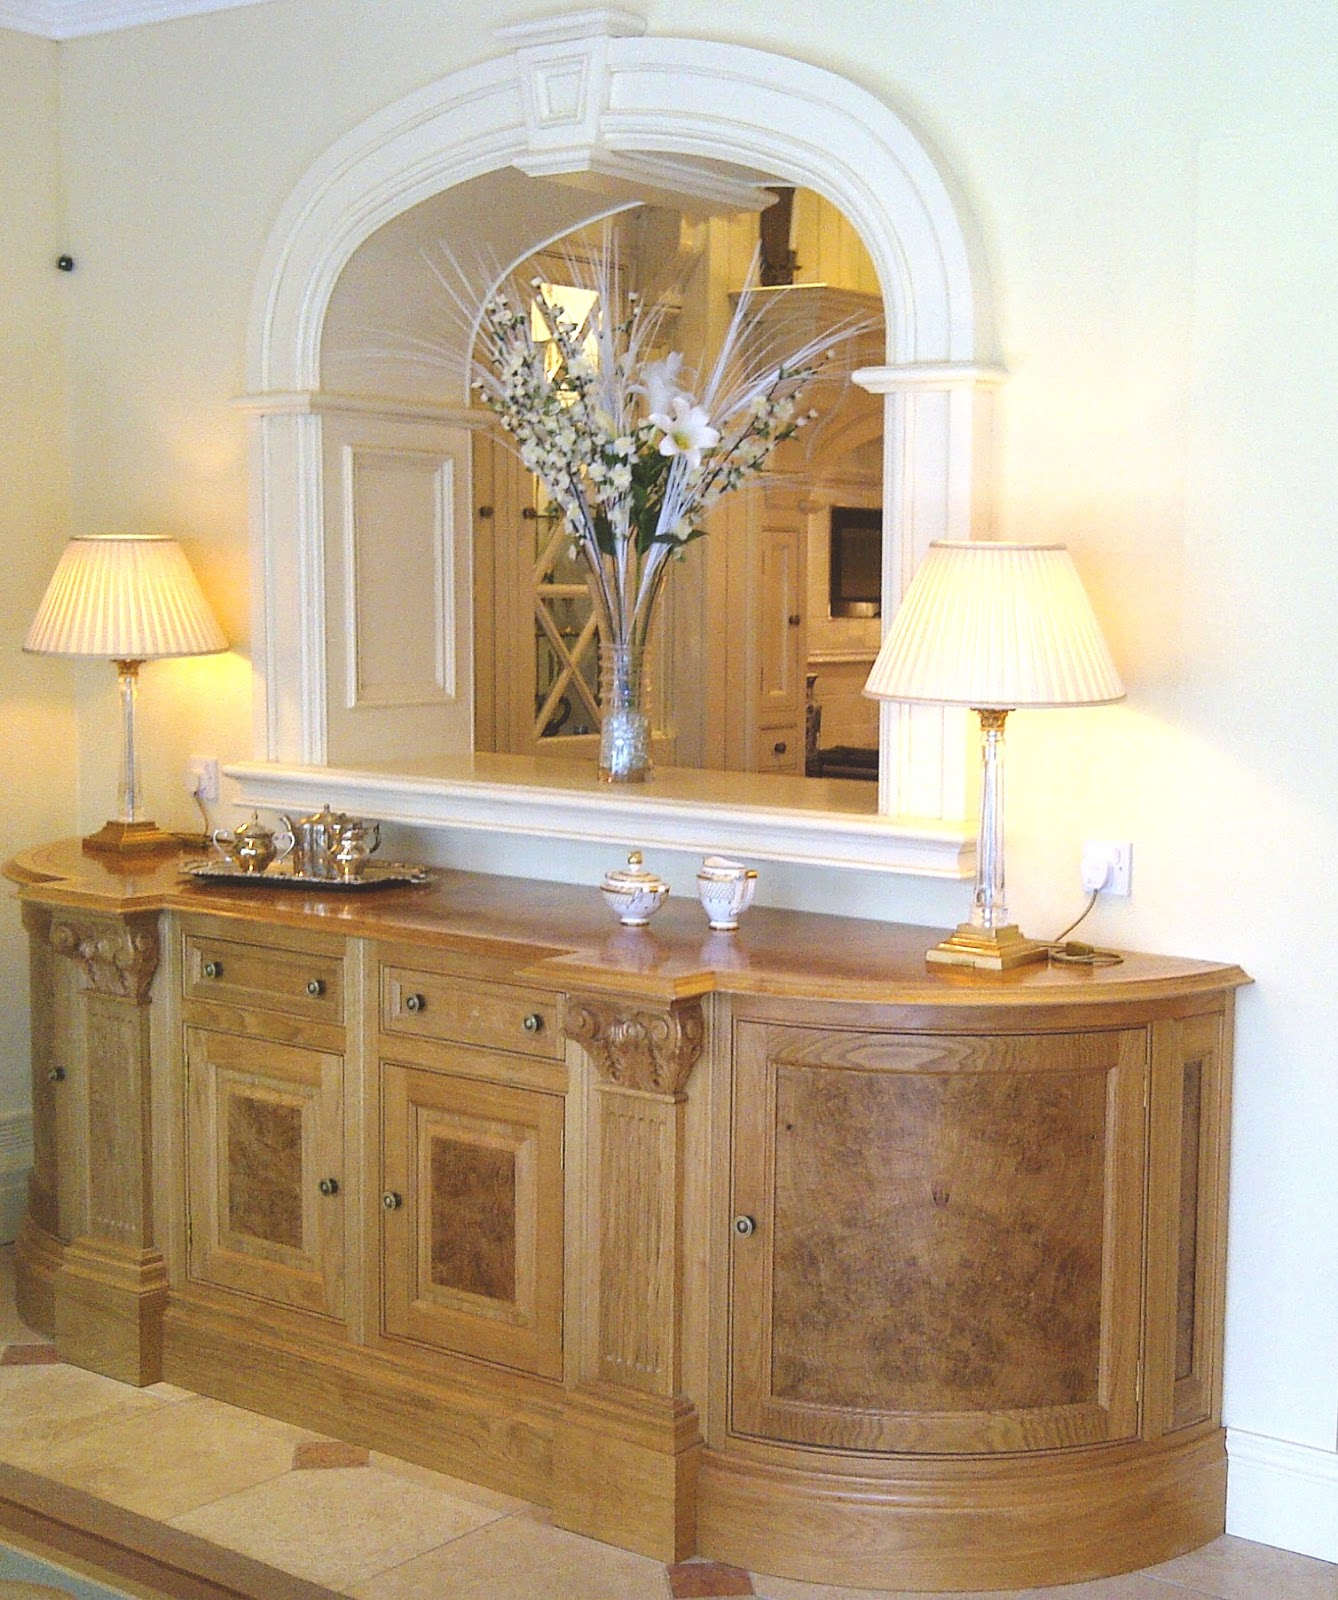 Clive Christian Kitchen: TRADITION INTERIORS OF NOTTINGHAM: Clive Christian Luxury